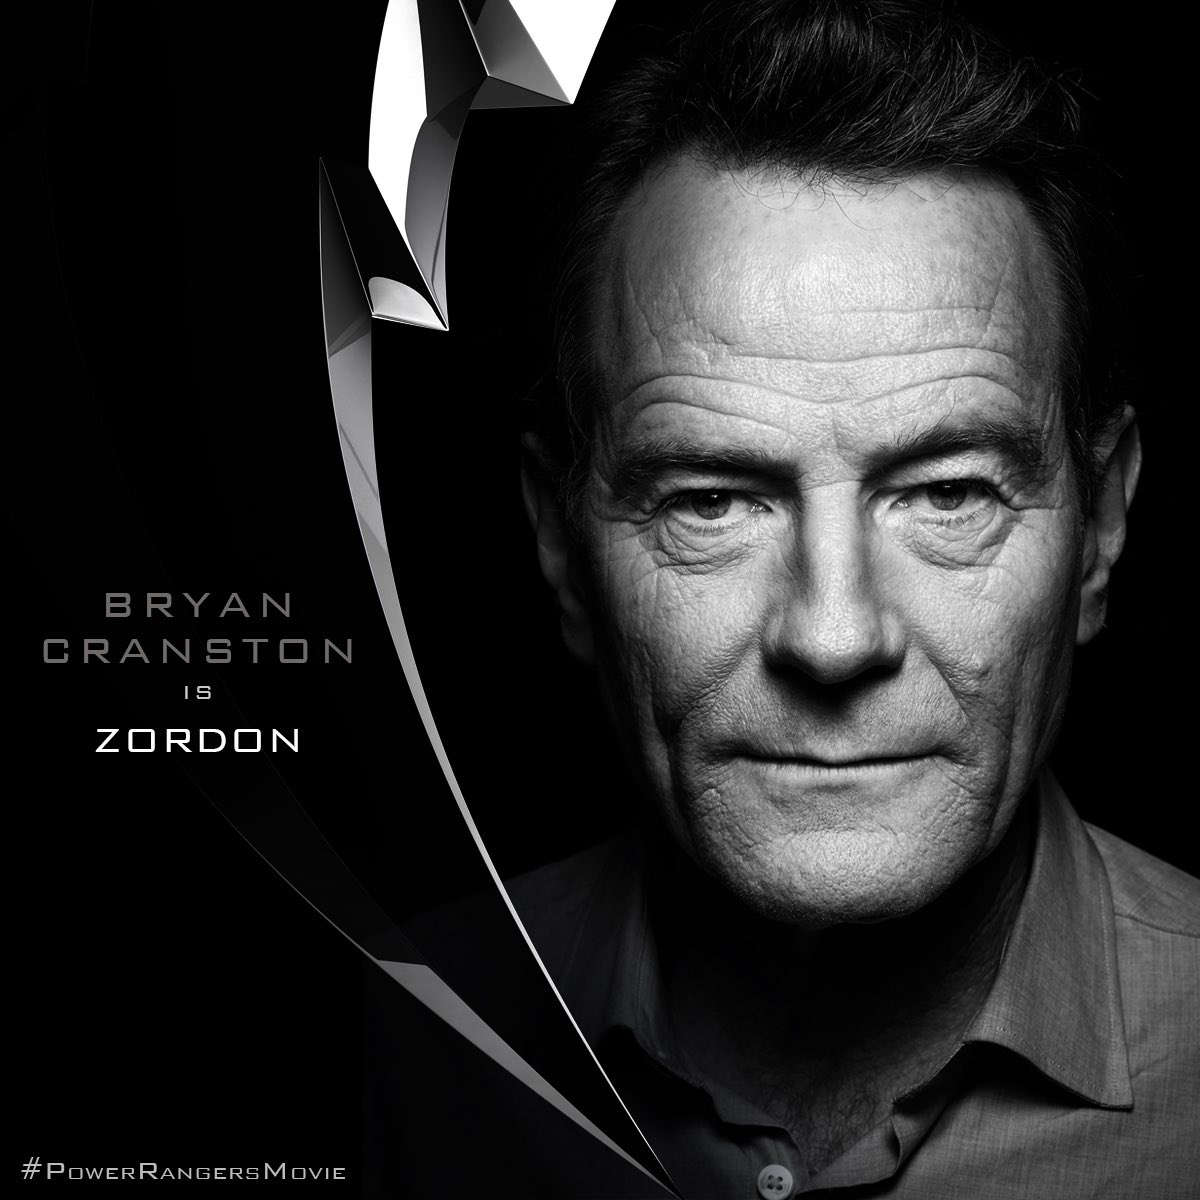 The mighty #Zordon has officially been cast! Please welcome @BryanCranston to the #PowerRangersMovie - coming 2017 https://t.co/b8KoWpuWjD